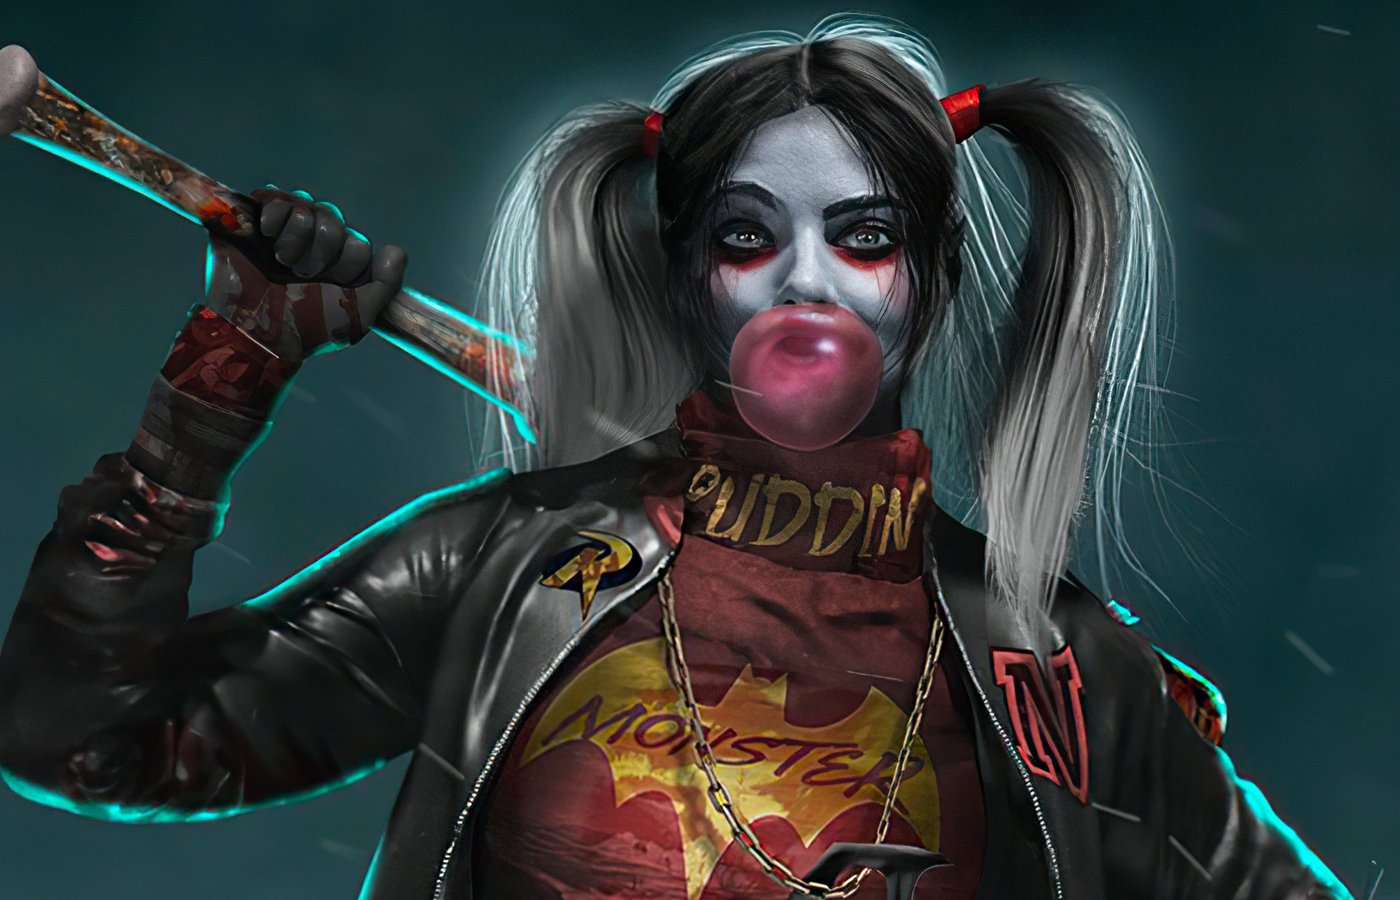 1400x900 Harley Quinn Bosslogic 1400x900 Resolution HD 4k Wa